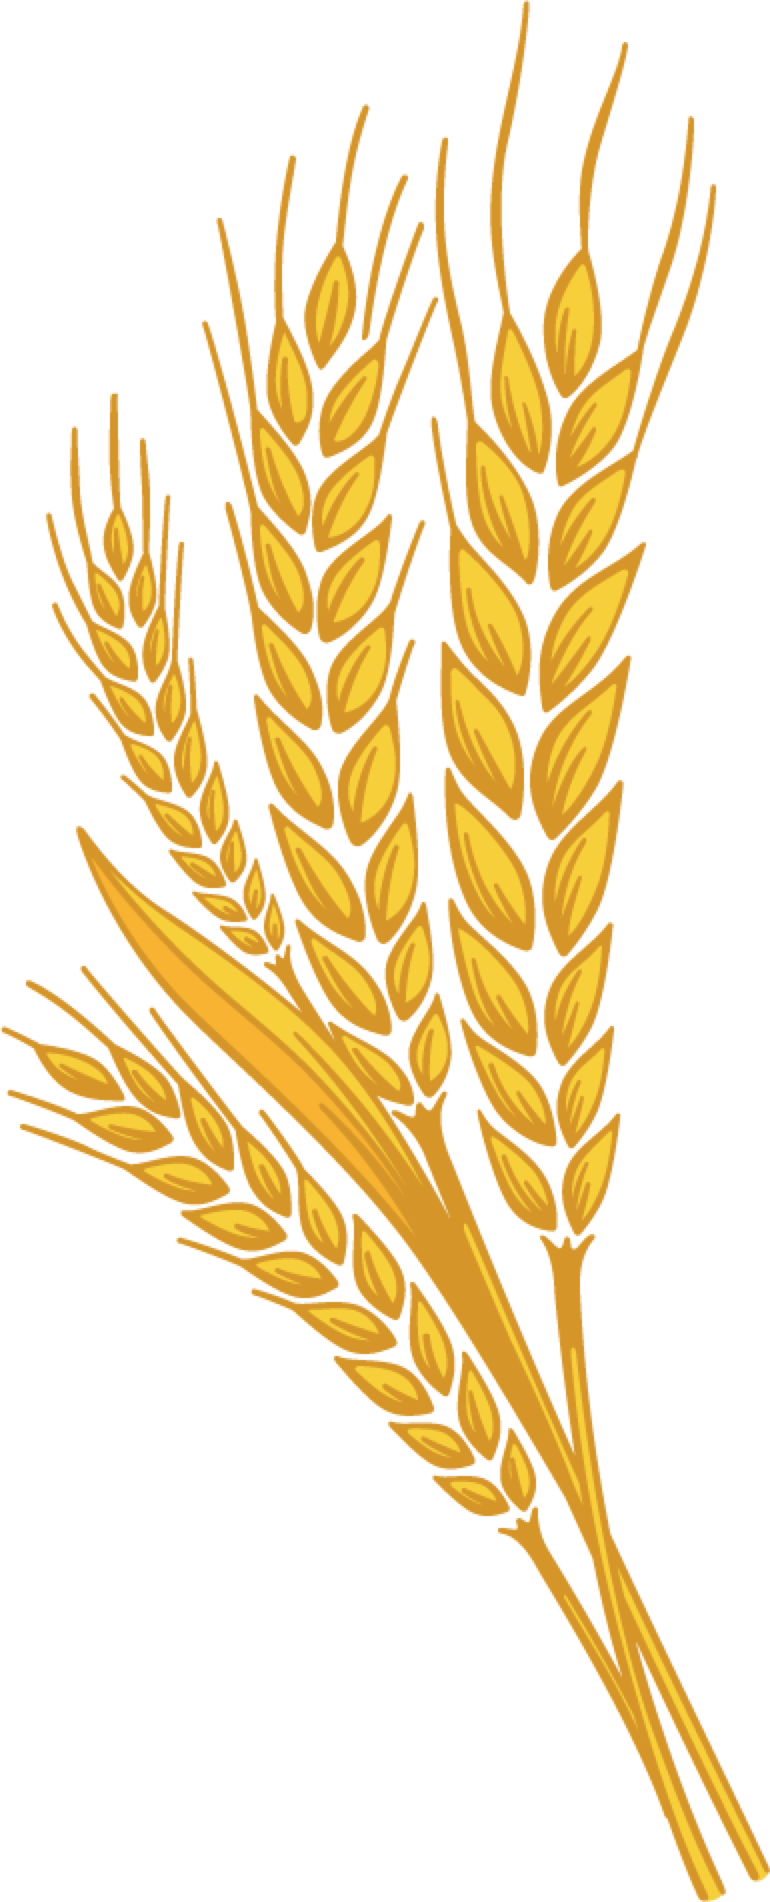 Wheat clipart gold paisley. Stem free on dumielauxepices